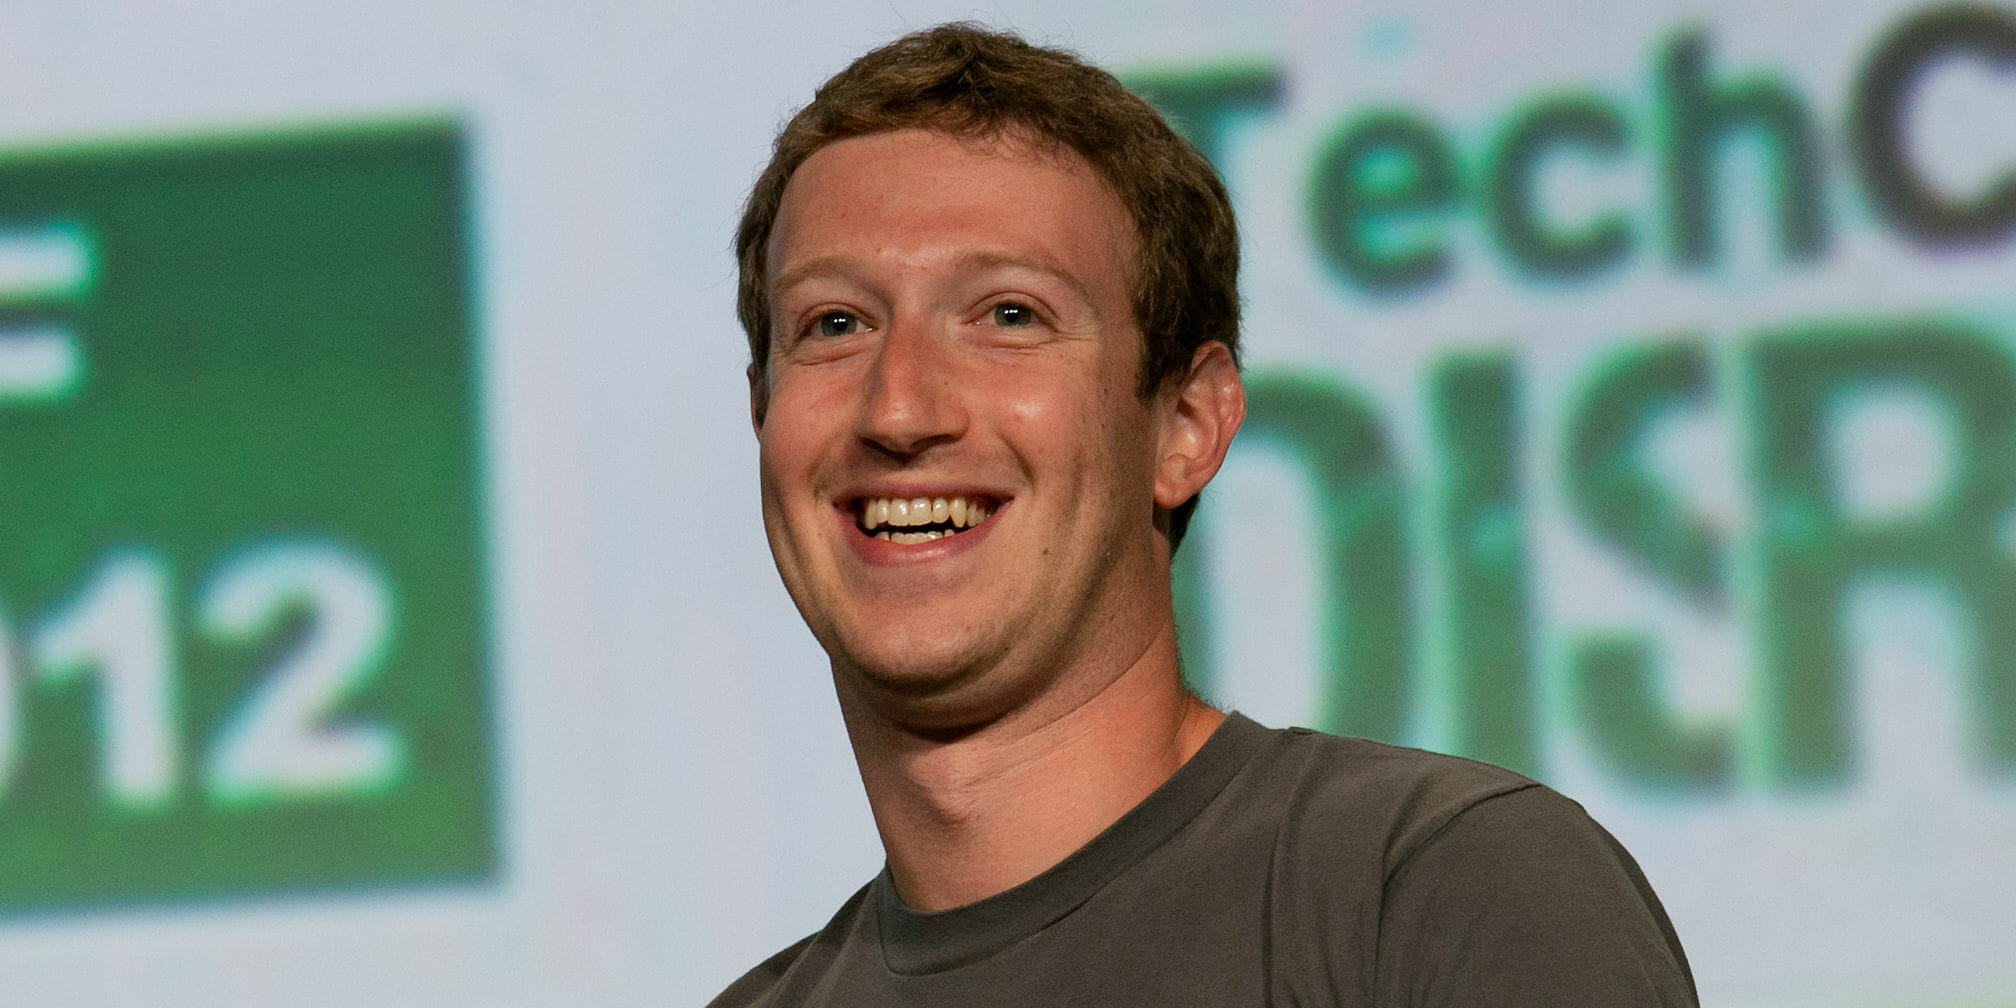 Facebook to face lawsuit over face-scanning tech